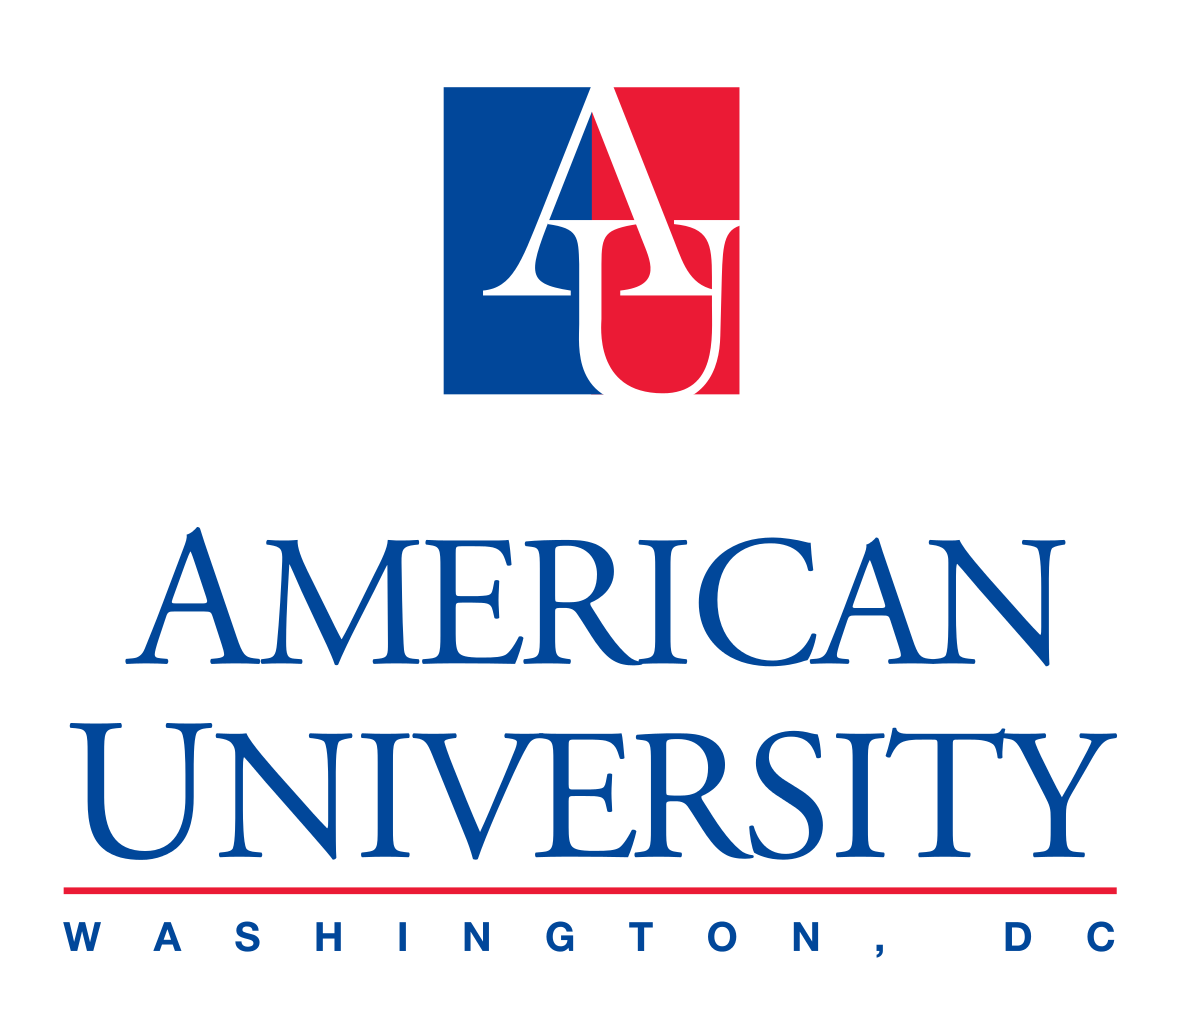 http://upload.wikimedia.org/wikipedia/en/thumb/5/54/American_University_Logo.svg/1182px-American_University_Logo.svg.png